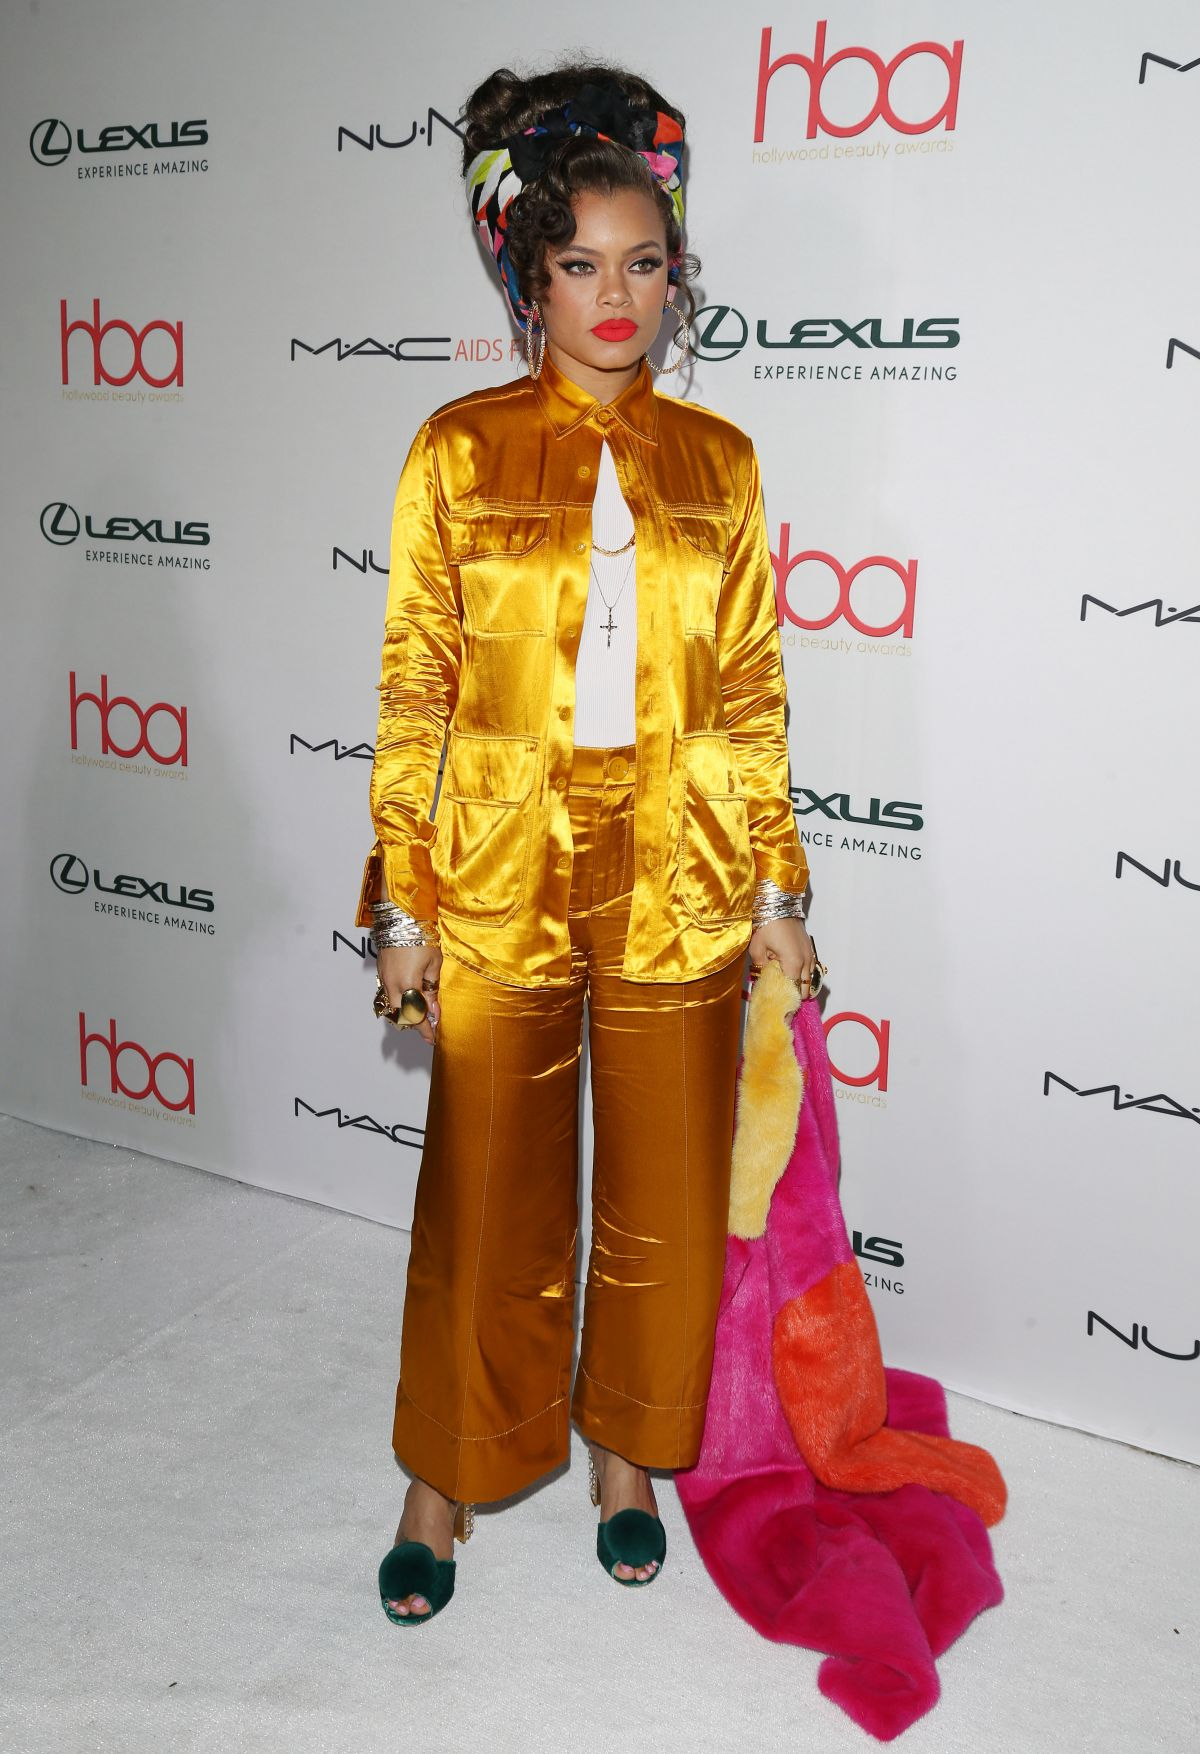 ANDRA DAY at 3rd Annual Hollywood Beauty Awards in Los Angeles 02/19/2017